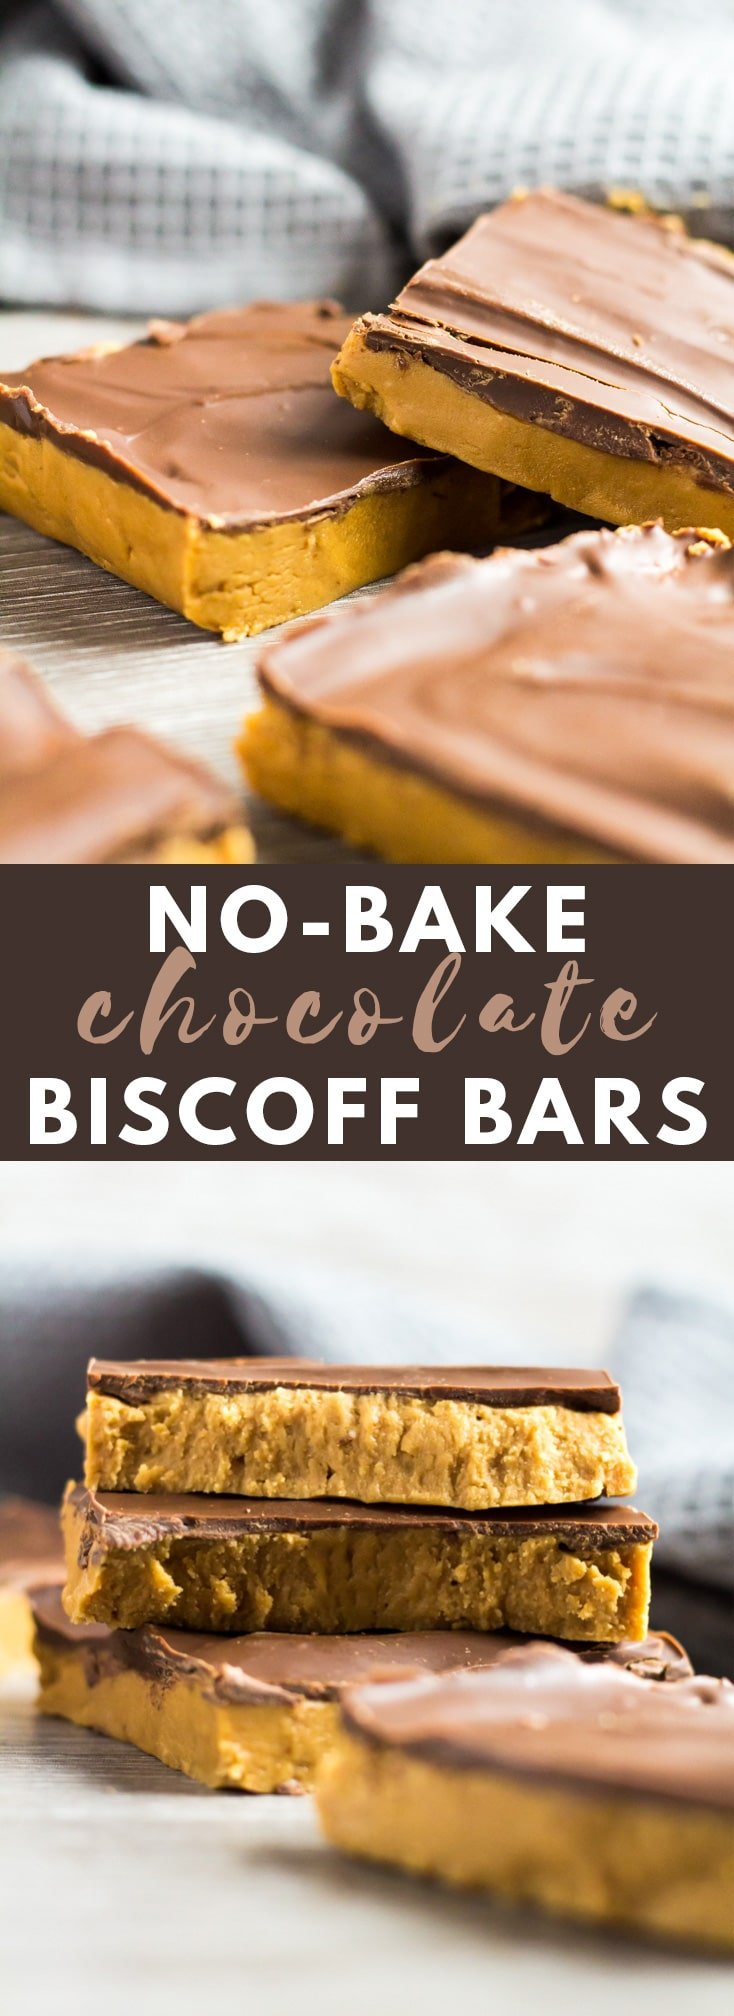 No-Bake Chocolate Biscoff Bars - Deliciously creamy and fudgy Biscoff bars that are full of flavour, no-bake, and topped with a layer of chocolate!